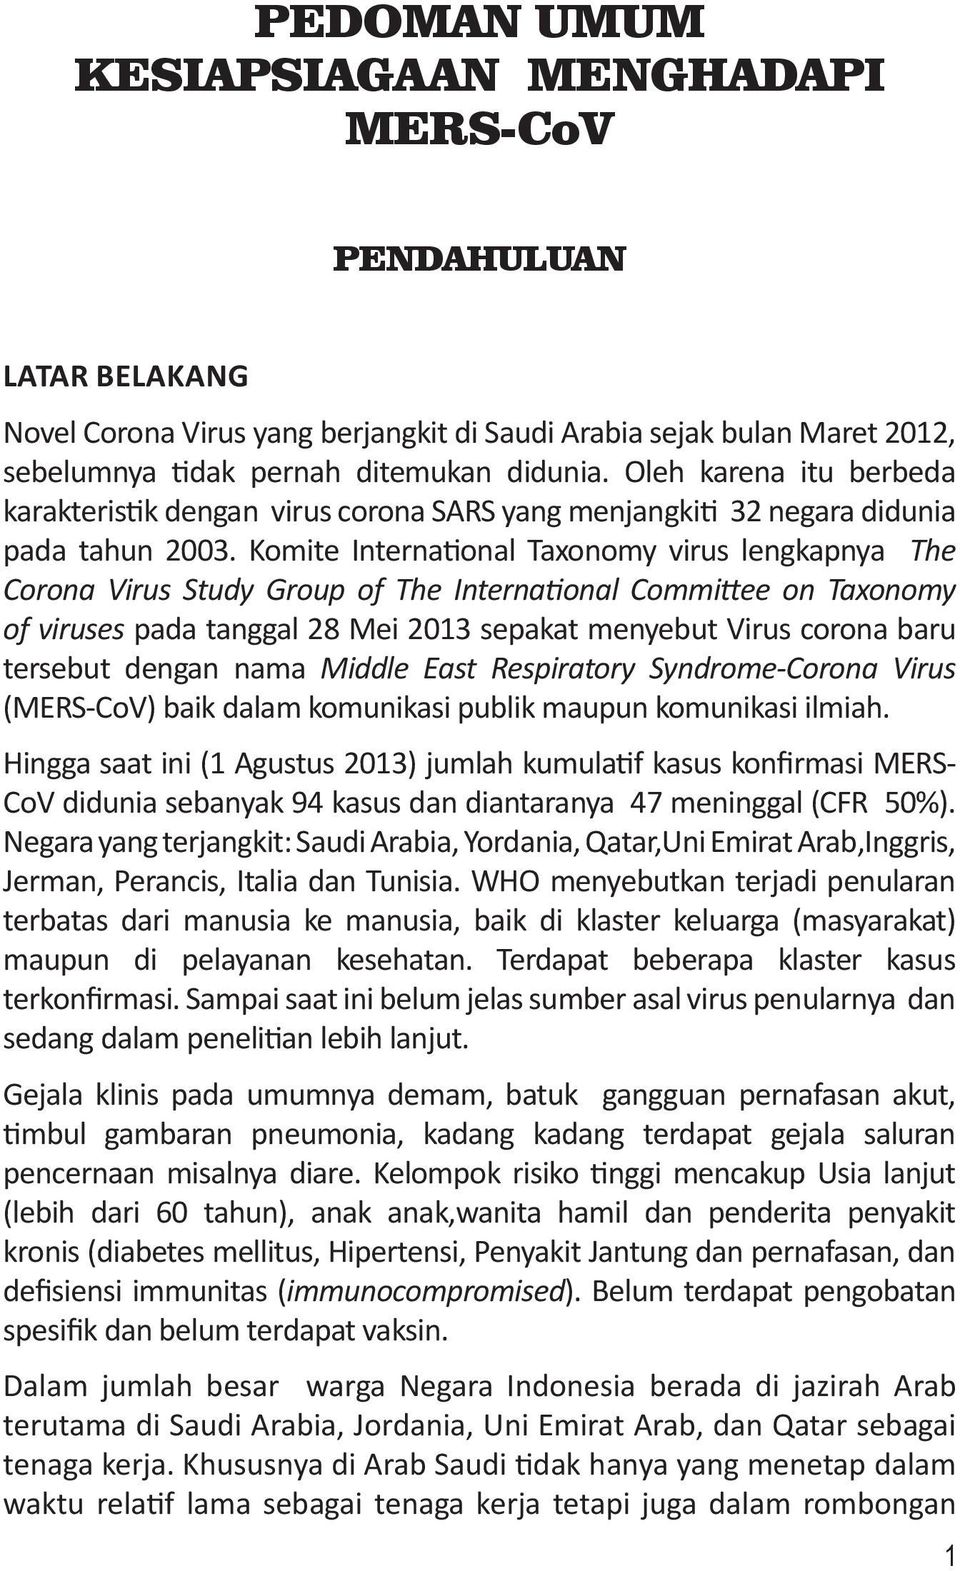 Komite International Taxonomy virus lengkapnya The Corona Virus Study Group of The International Committee on Taxonomy of viruses pada tanggal 28 Mei 2013 sepakat menyebut Virus corona baru tersebut